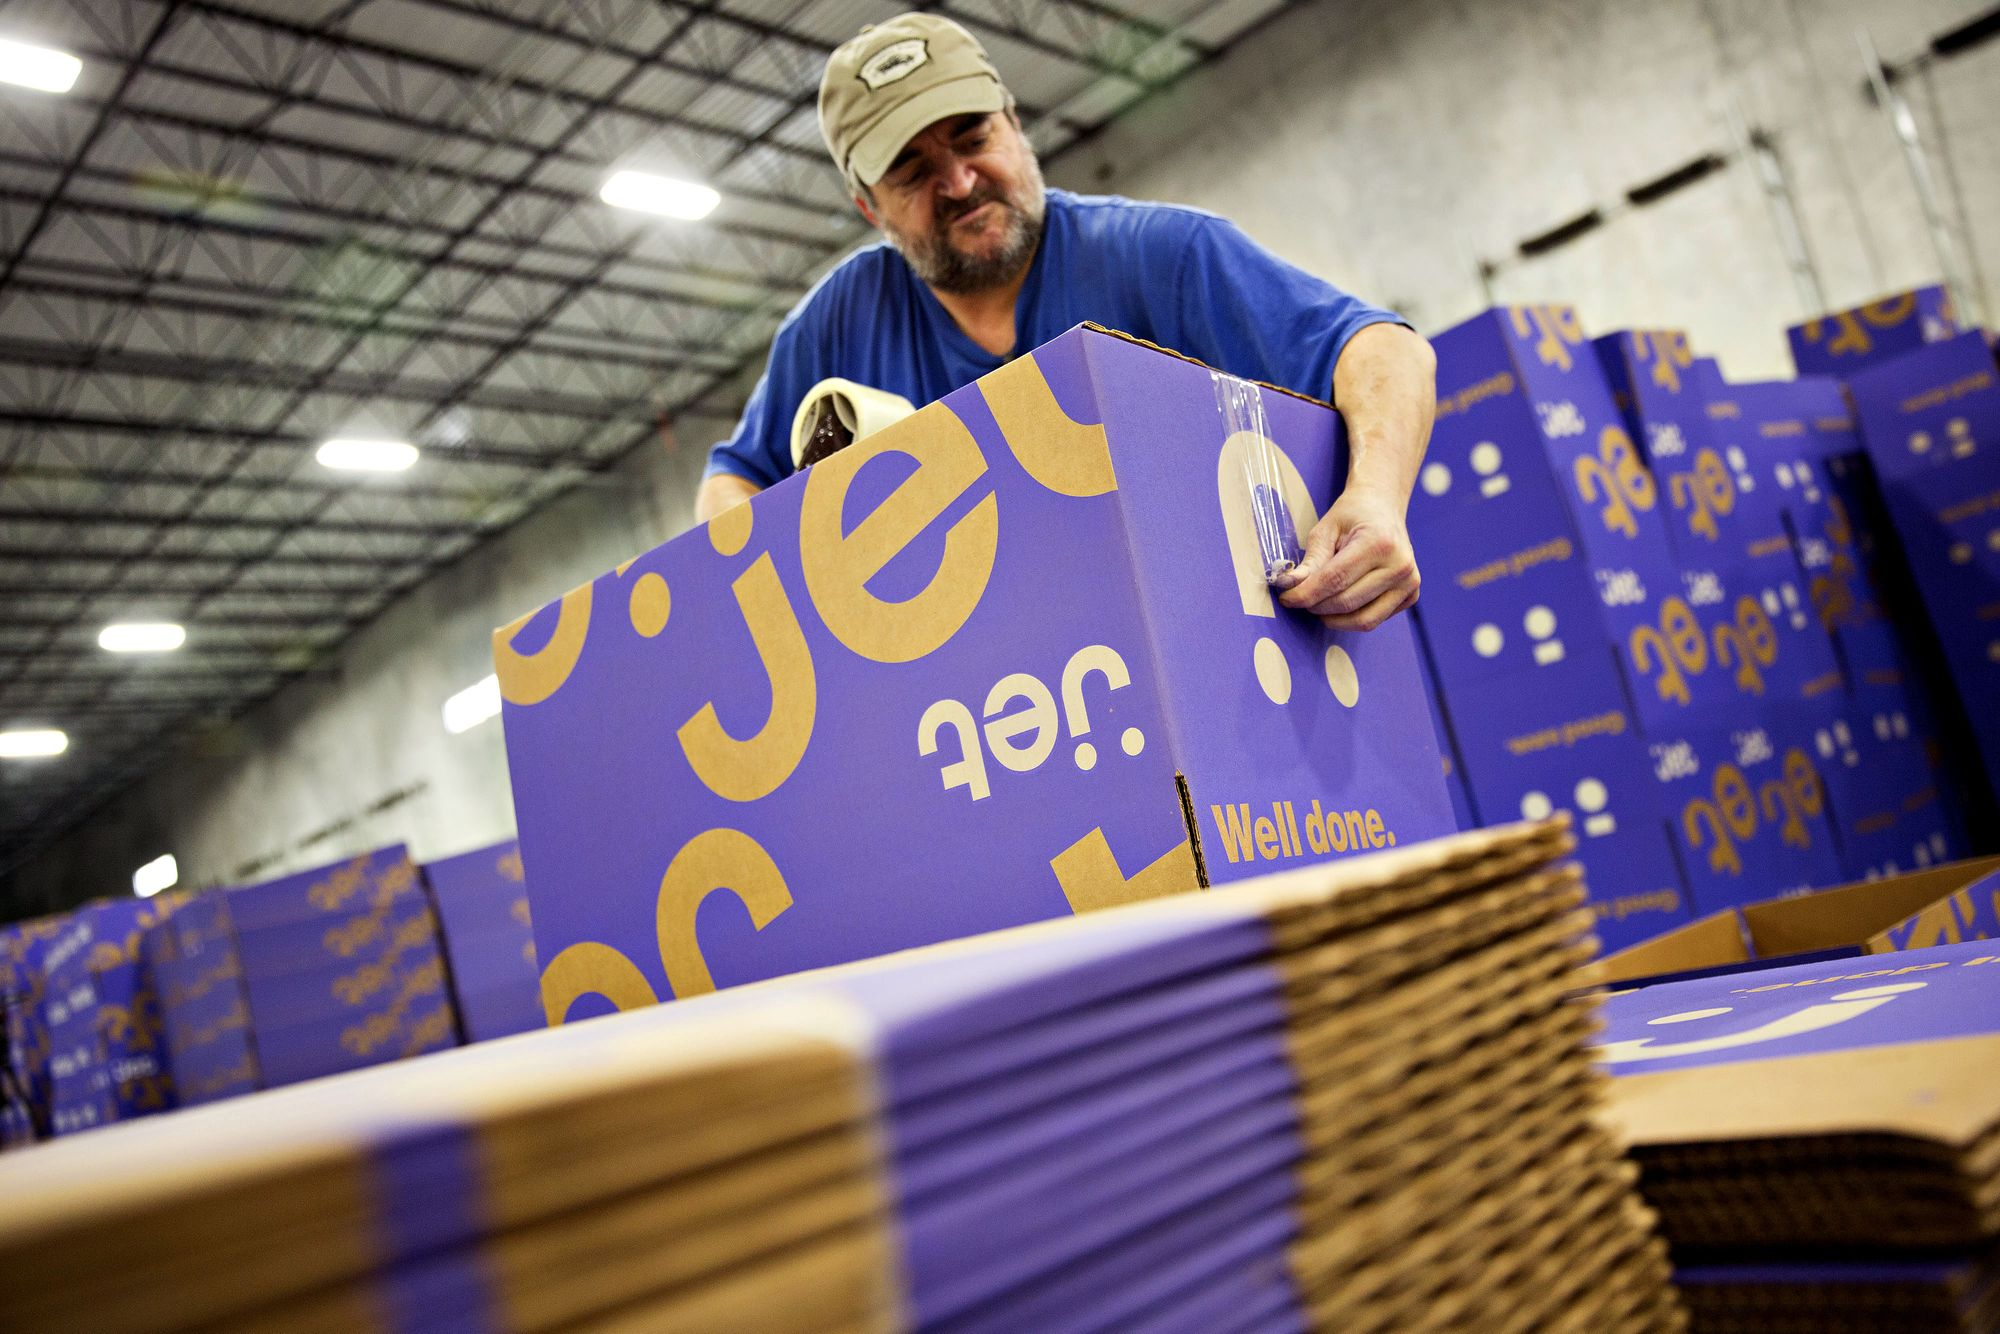 Walmart looks to phase out Jet.com in favor of Jet.com